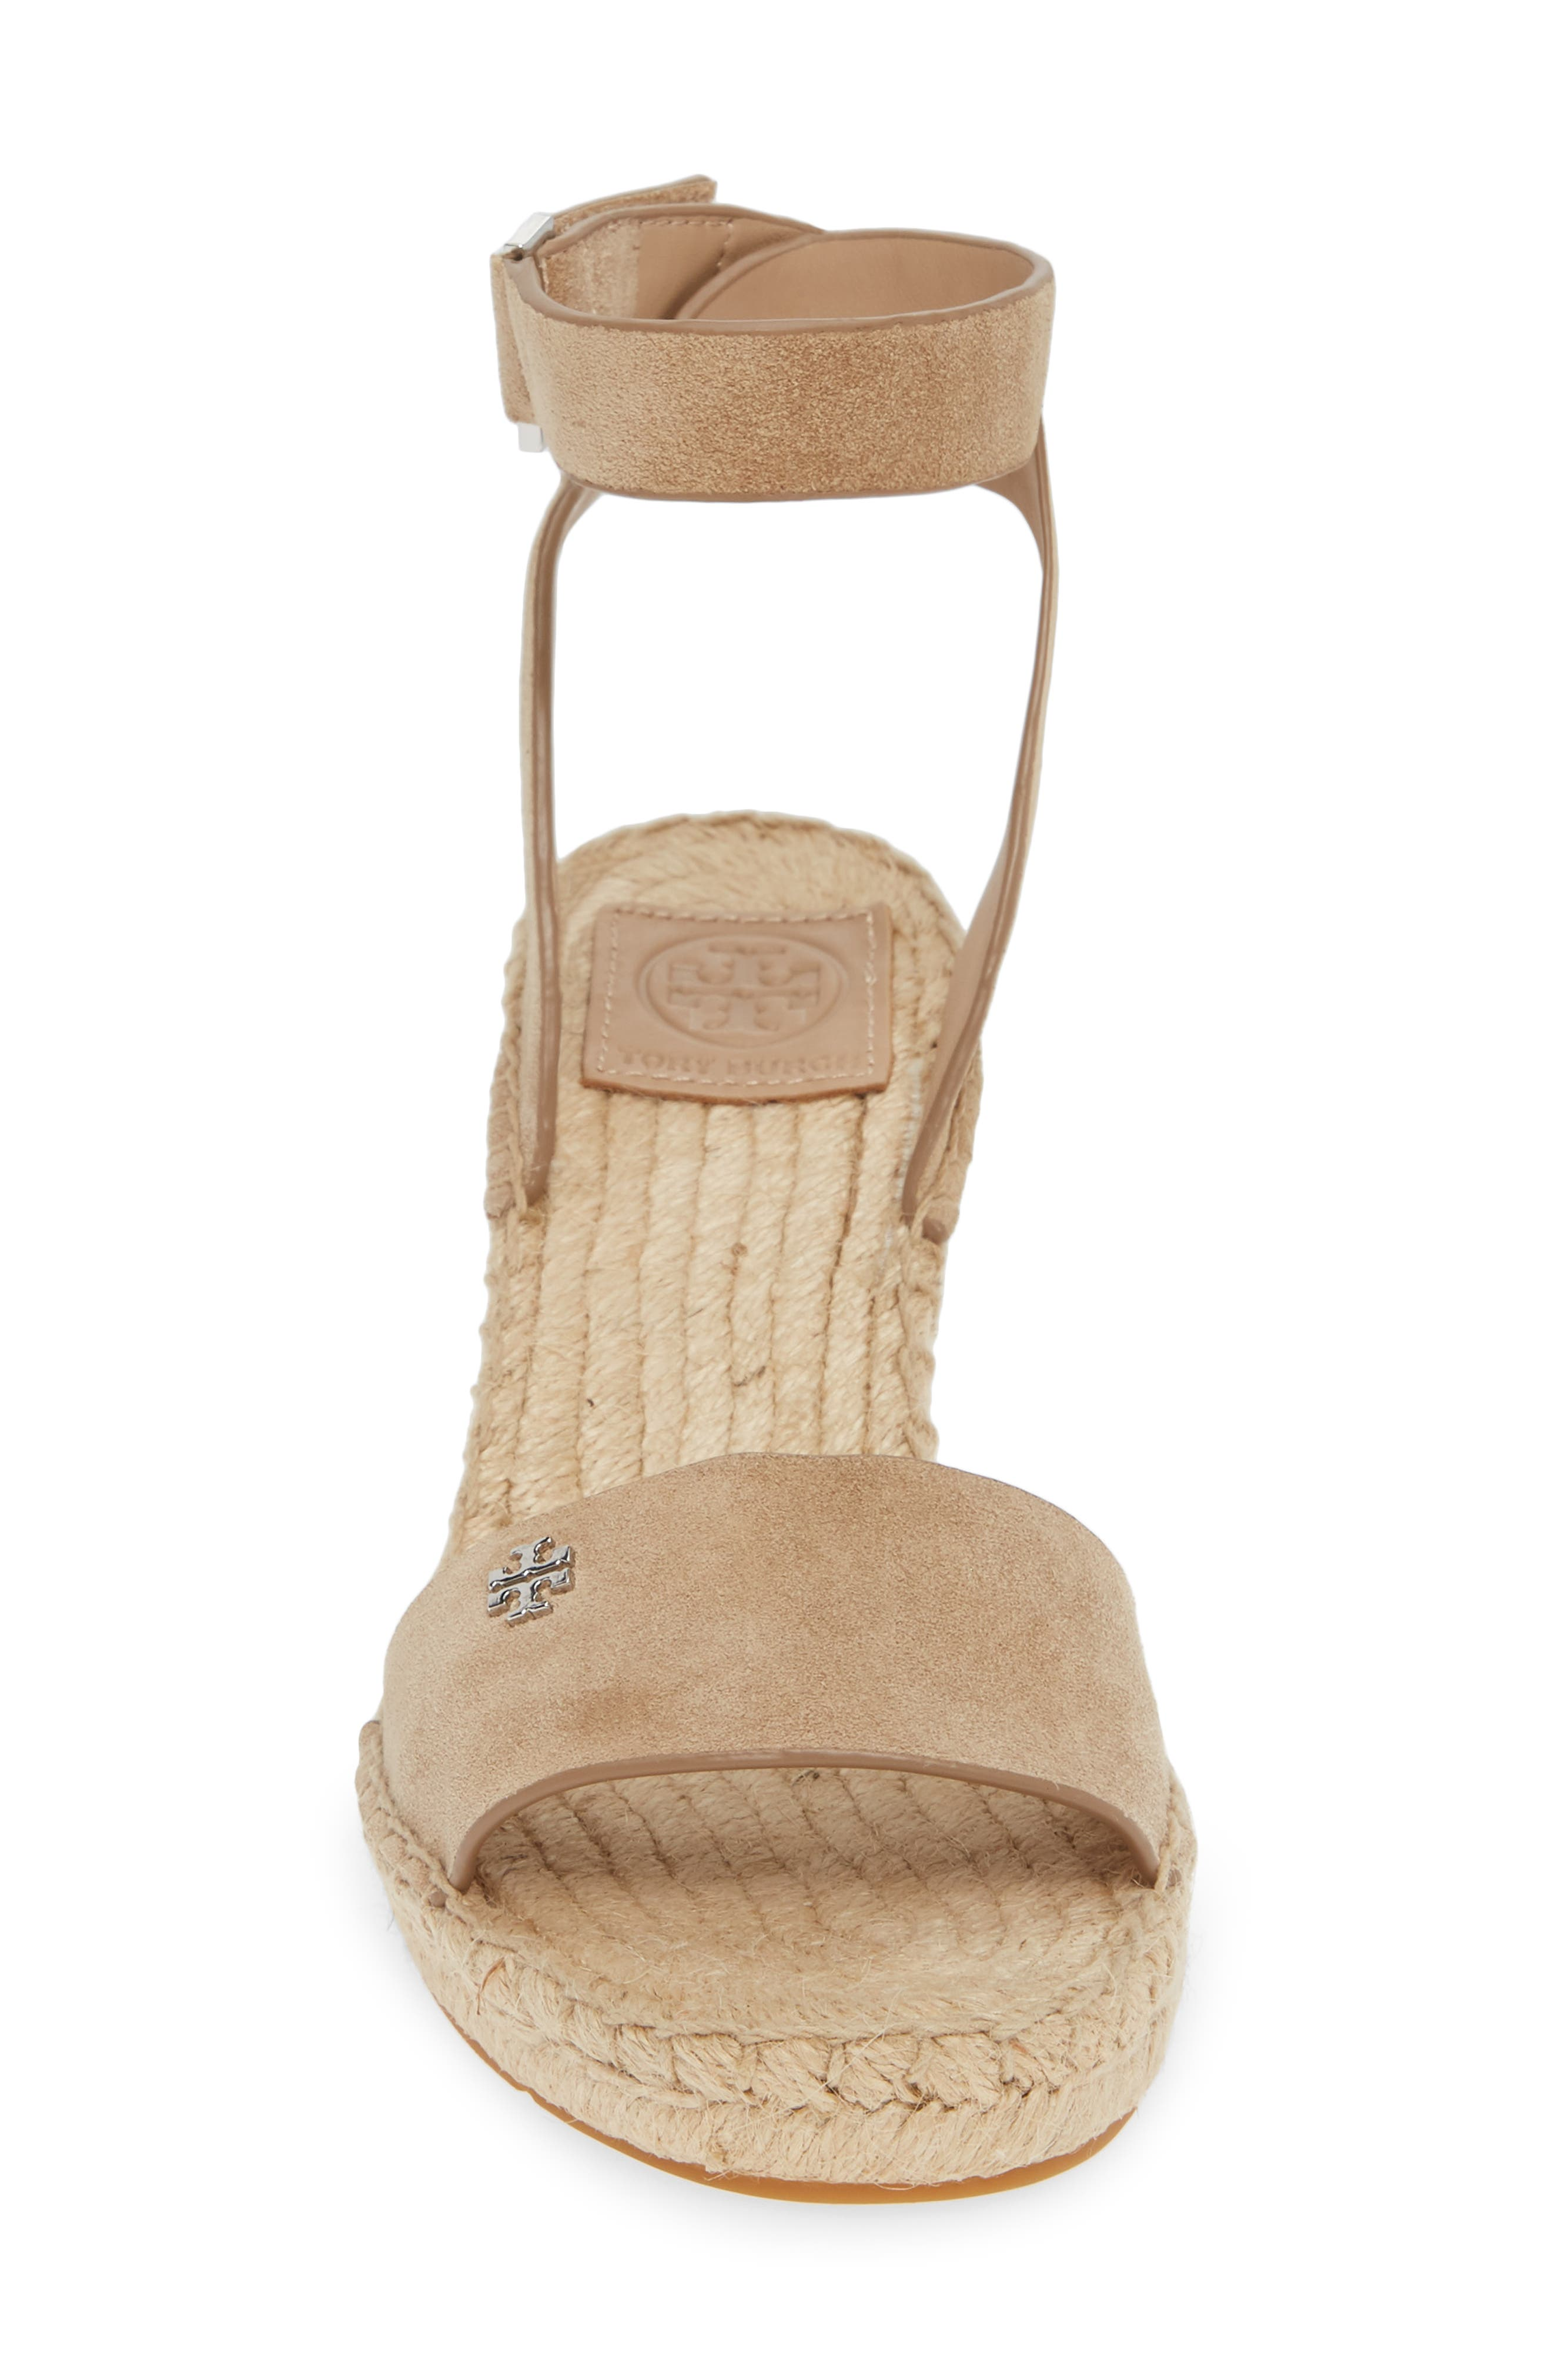 Bima 2 Espadrille,                             Alternate thumbnail 4, color,                             PERFECT SAND